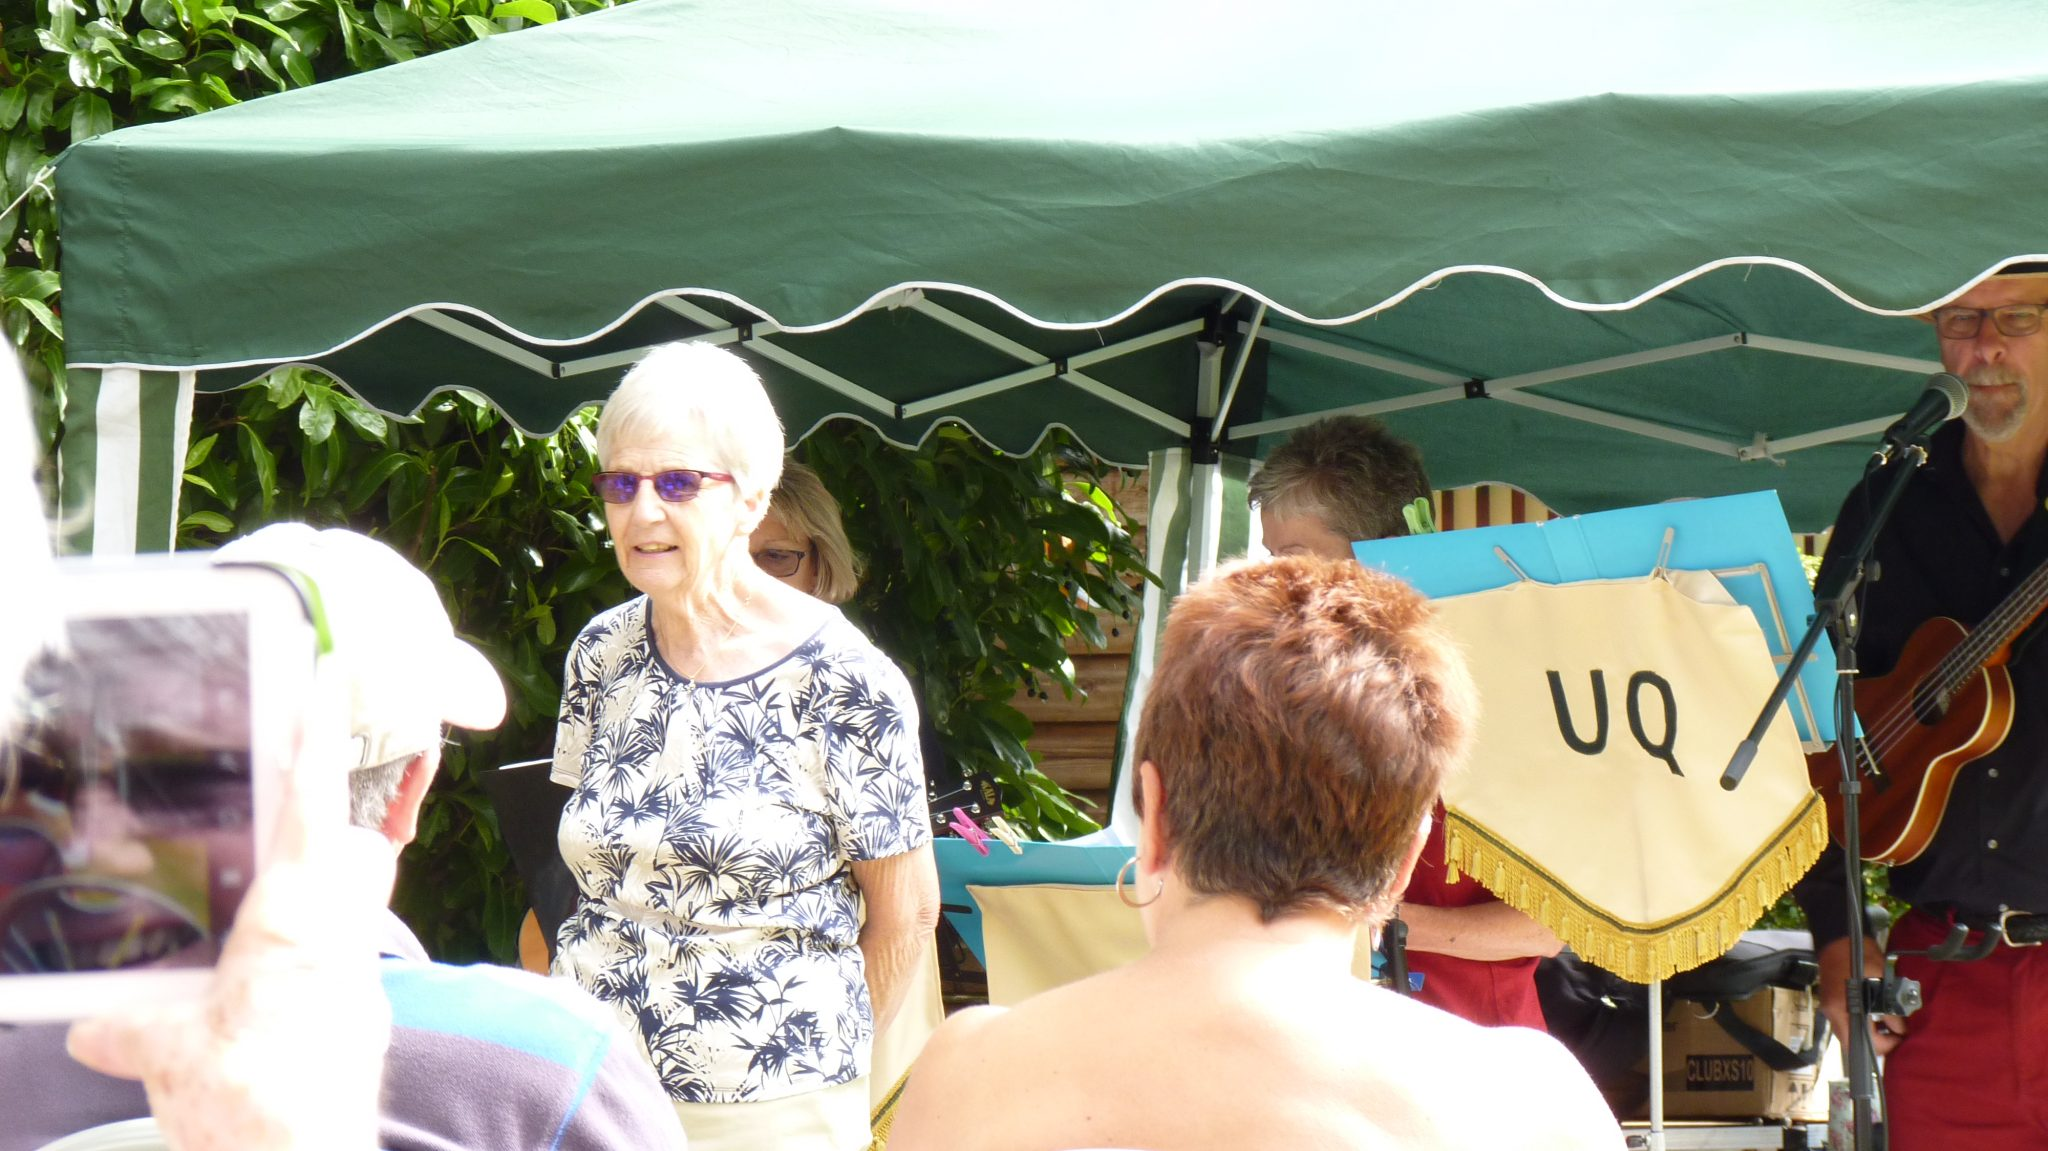 Our Chairman Gill Noble welcoming visitors to the garden and the free music event